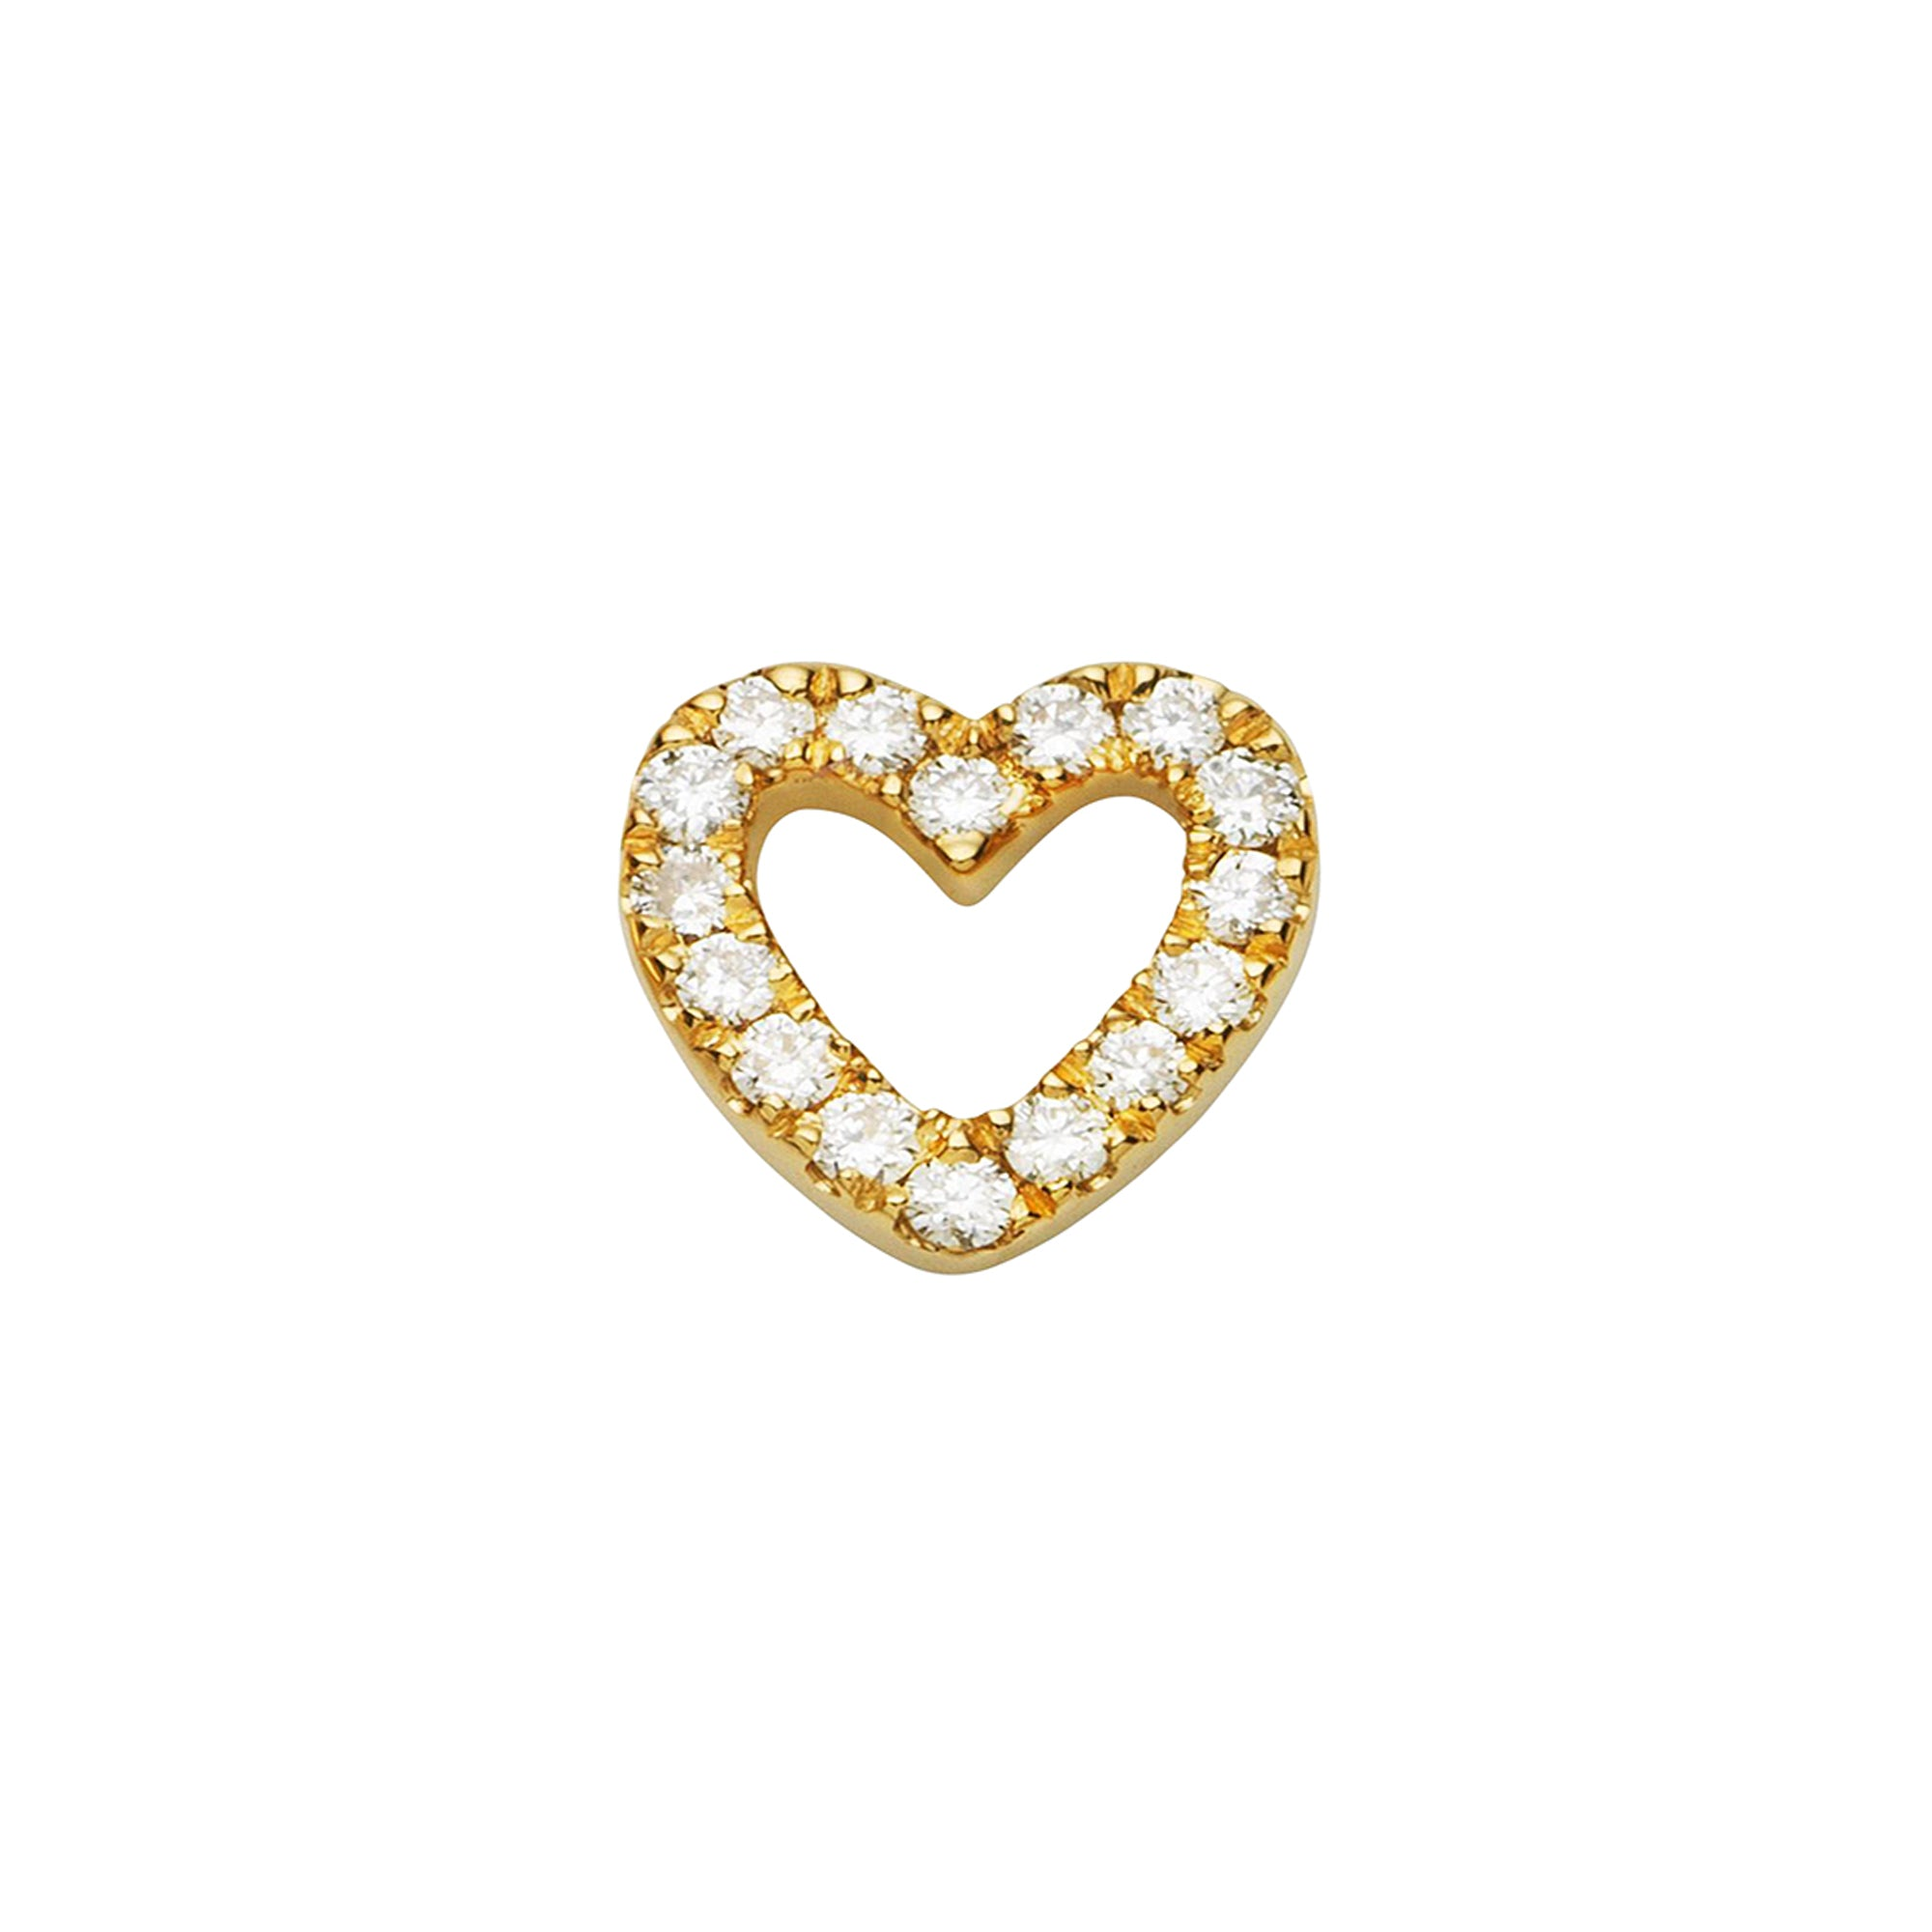 Loquet Diamond Heart Stud - Earrings - Broken English Jewelry